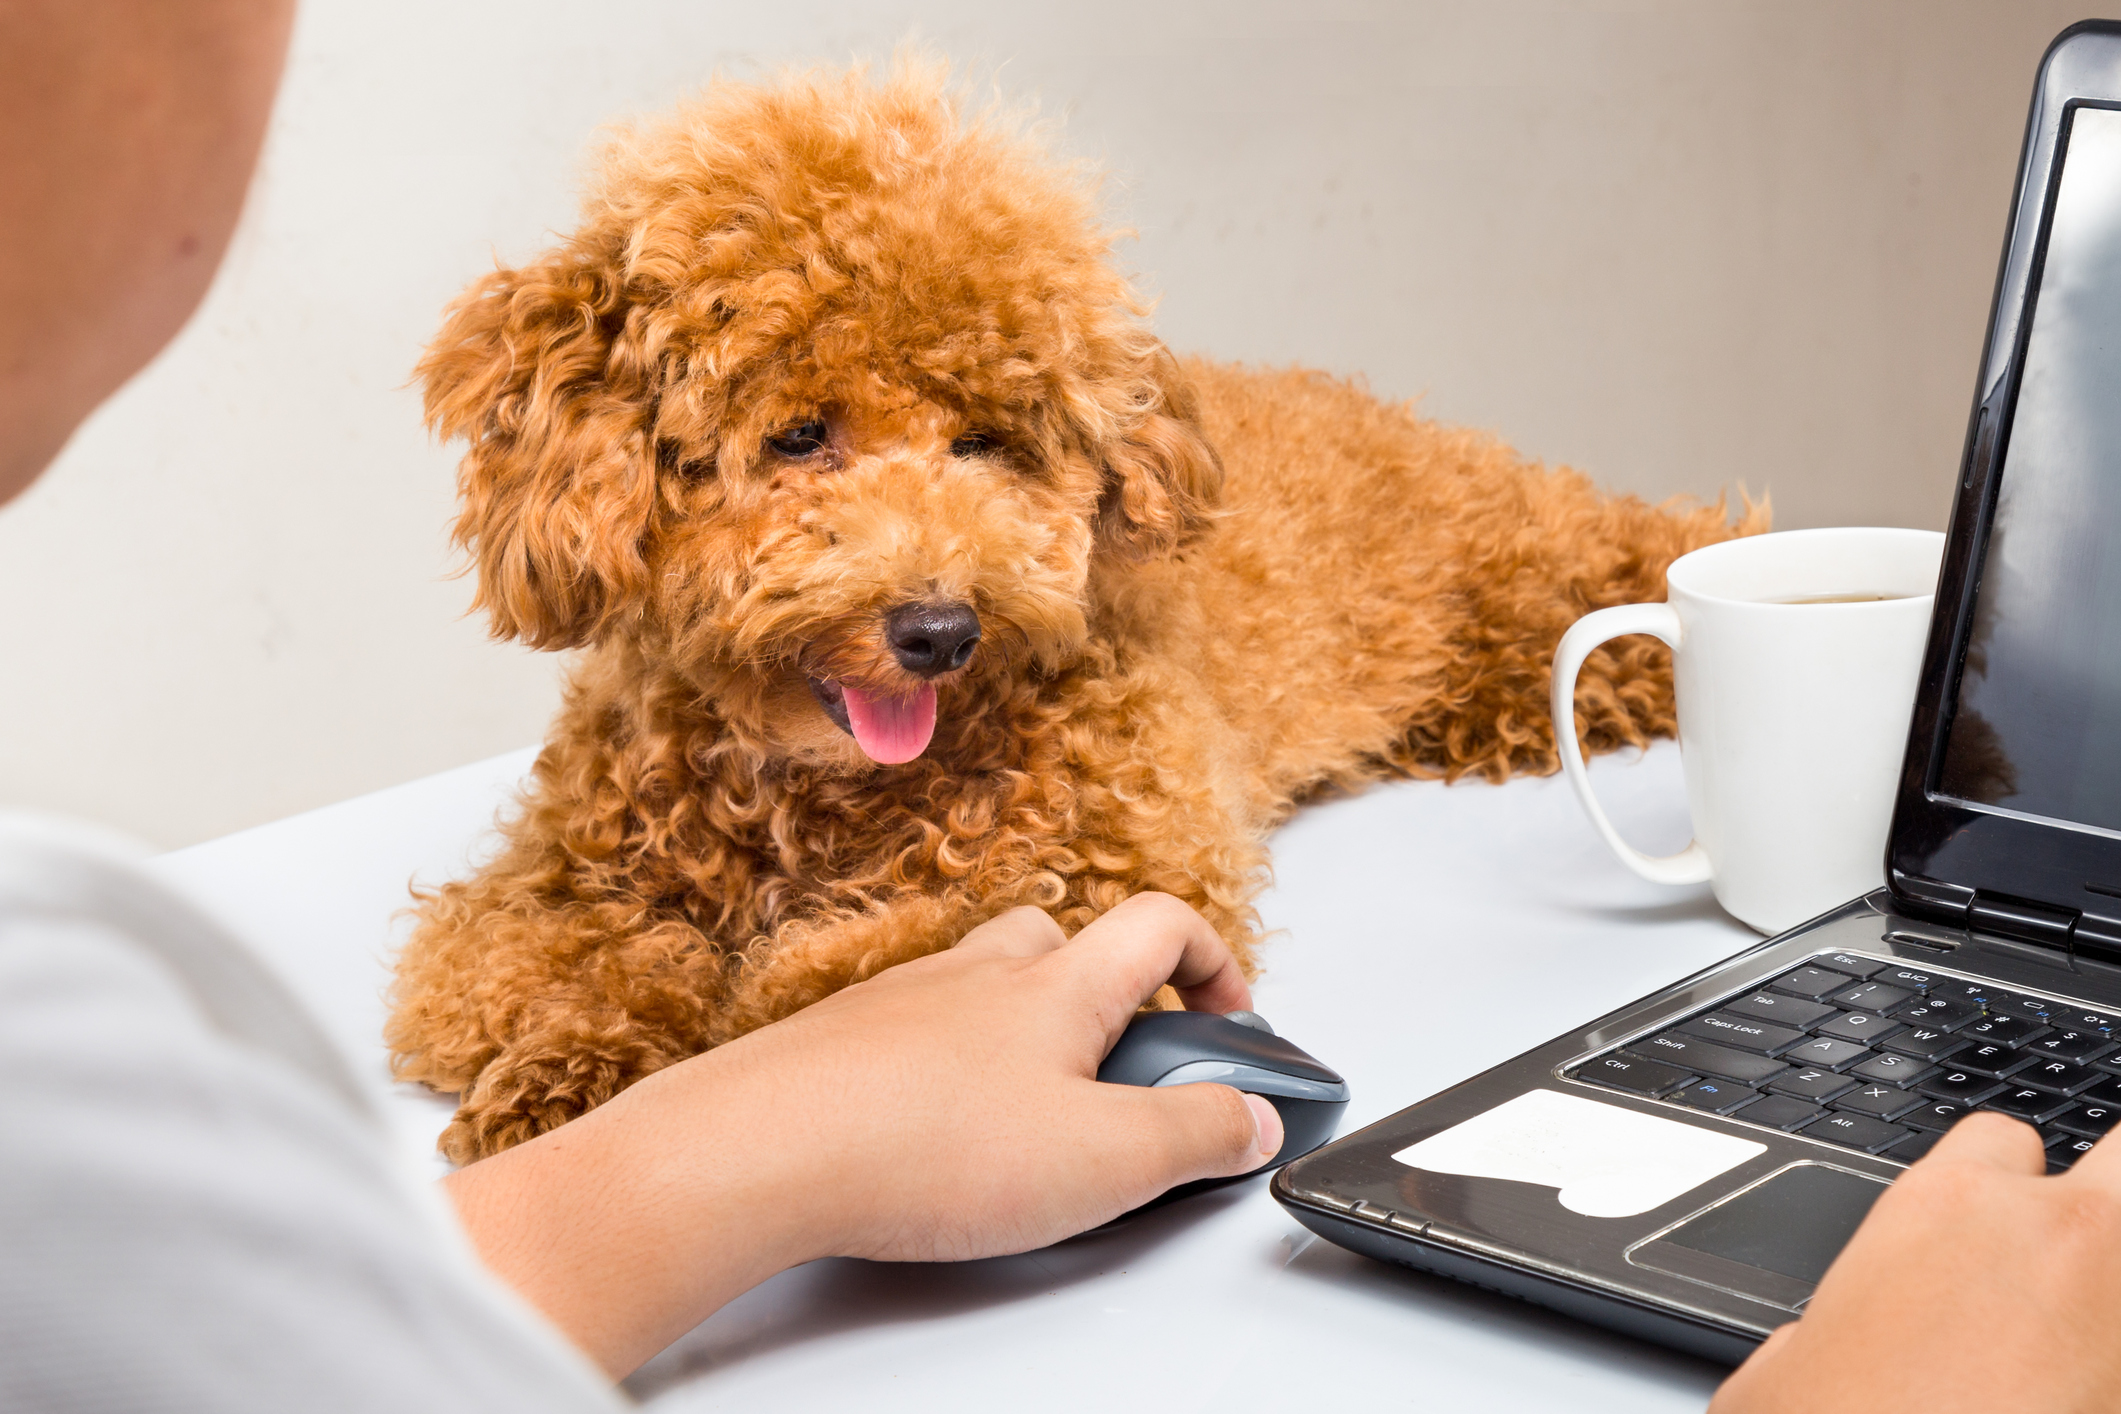 Office Dogs Can Lower Stress & Bond Employees